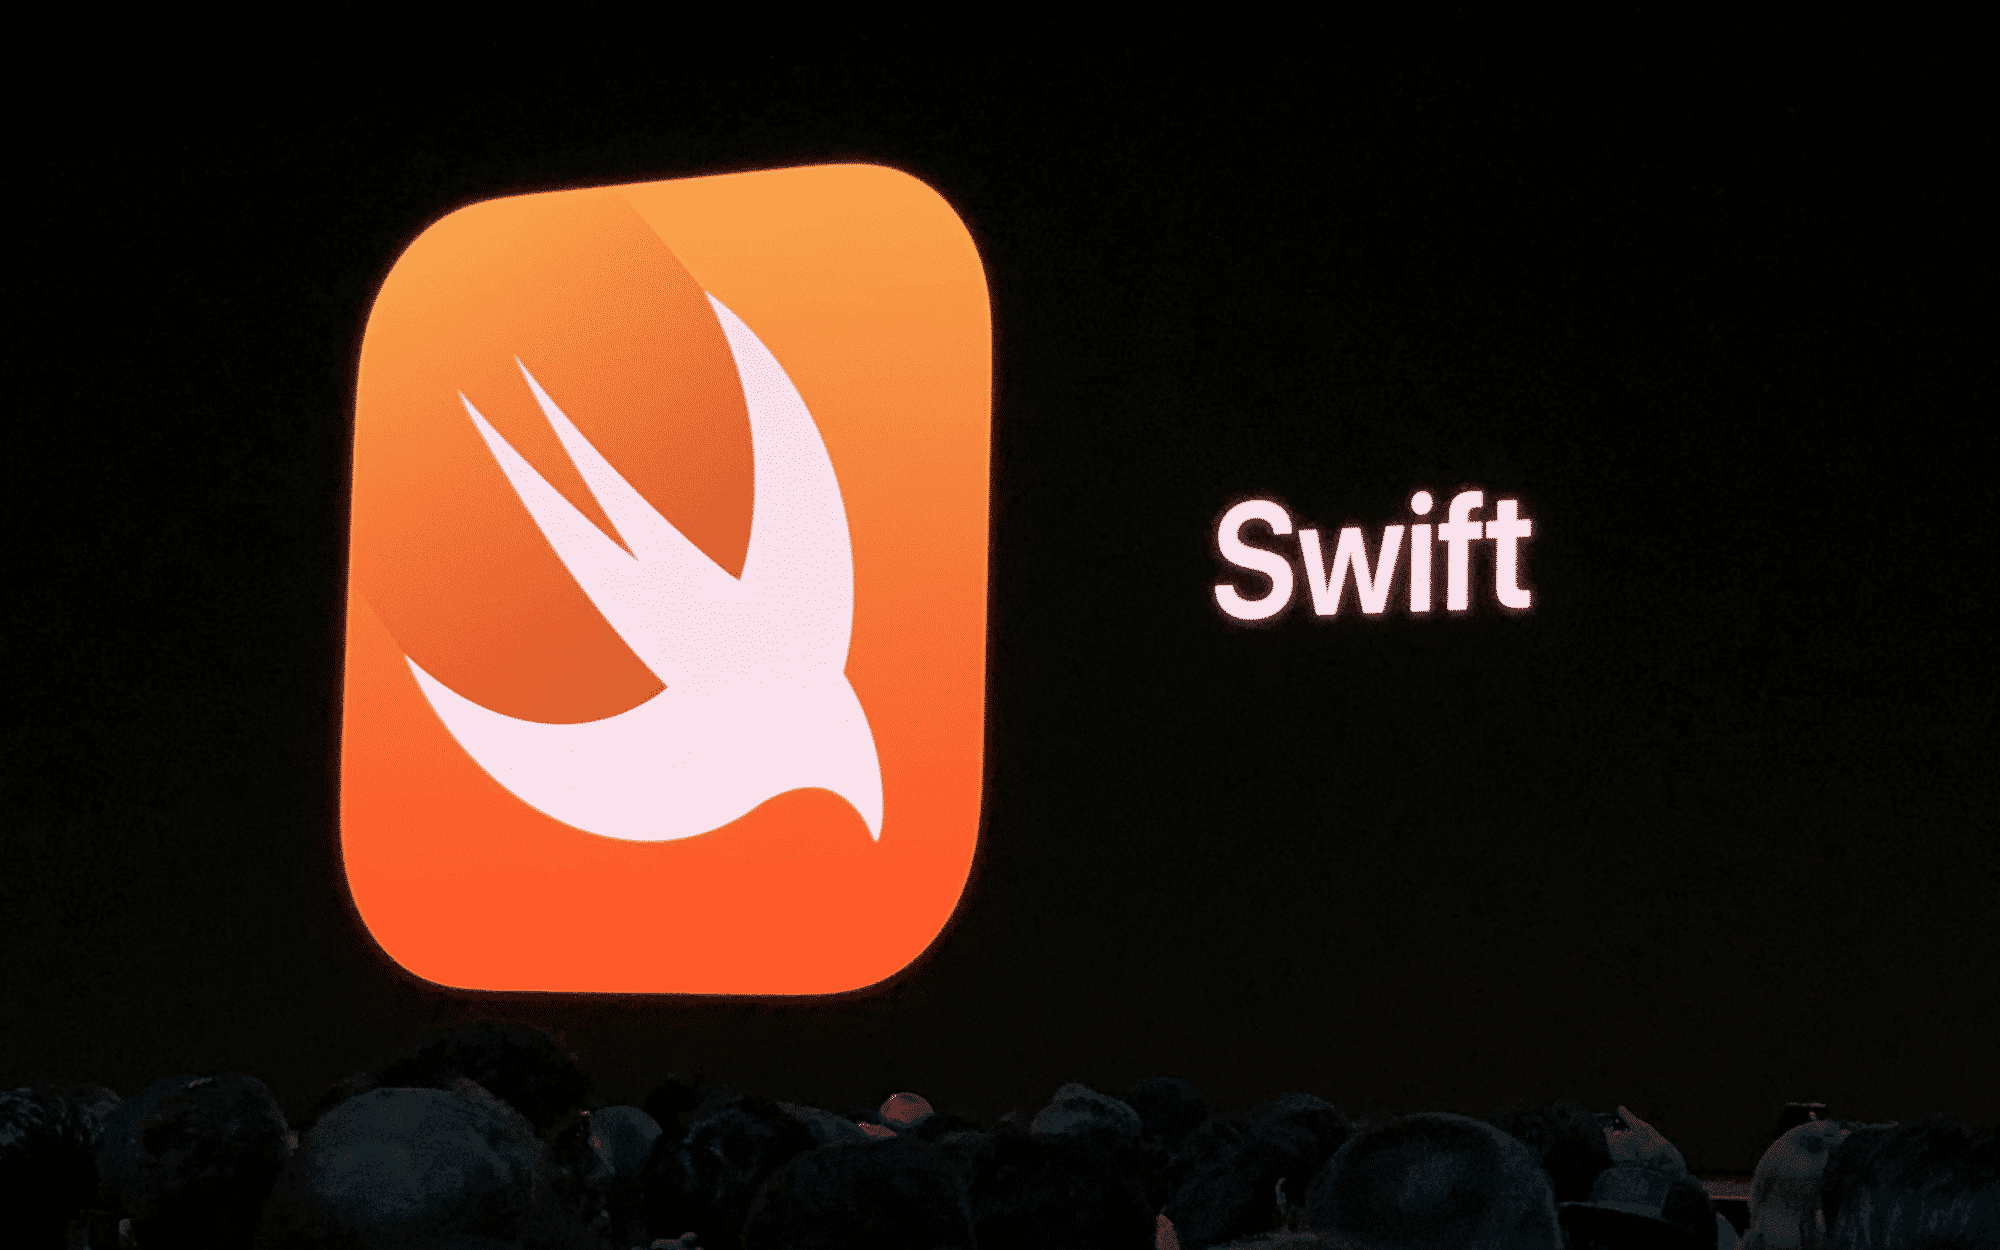 Apple's Swift programming language is now being used more than ever 1